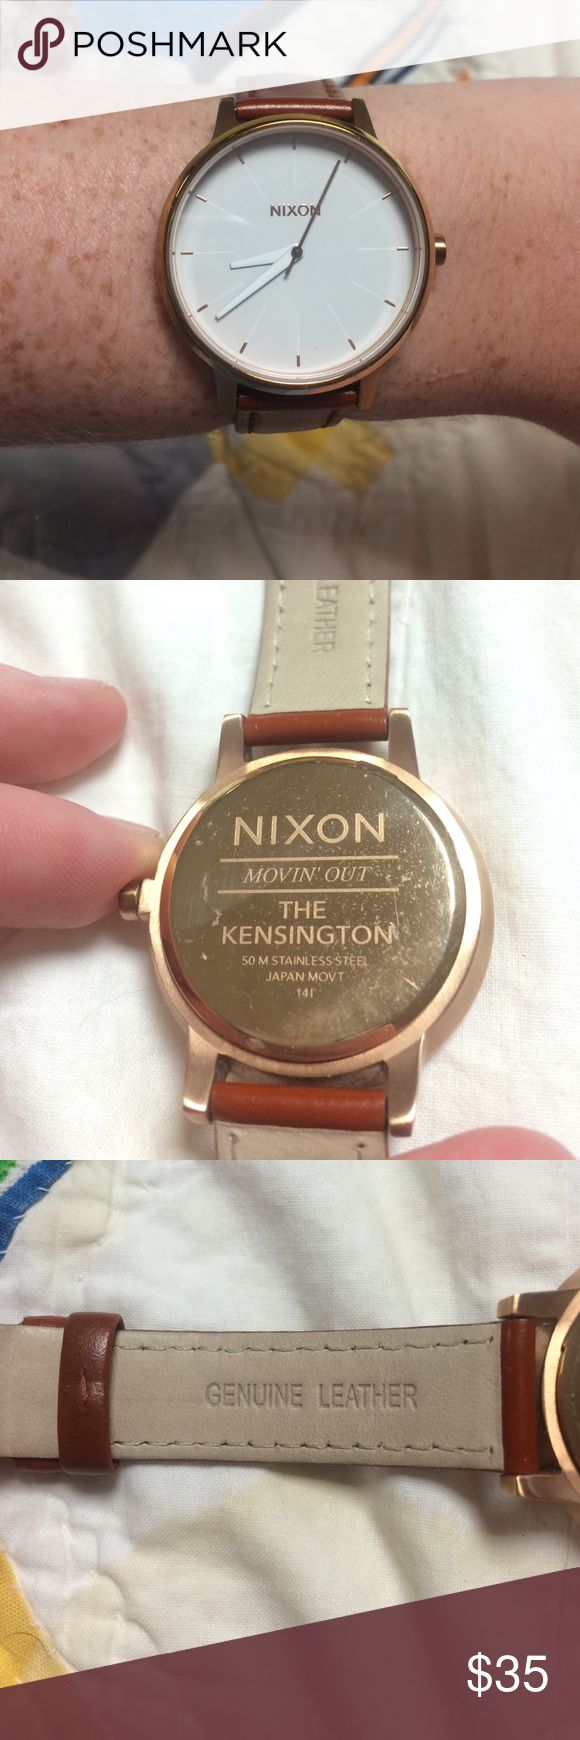 Nixon Women's Watch Brown and gold Nixon watch. Used maybe 5 times. No scratches on watch face or on leather band. Nixon Accessories Watches